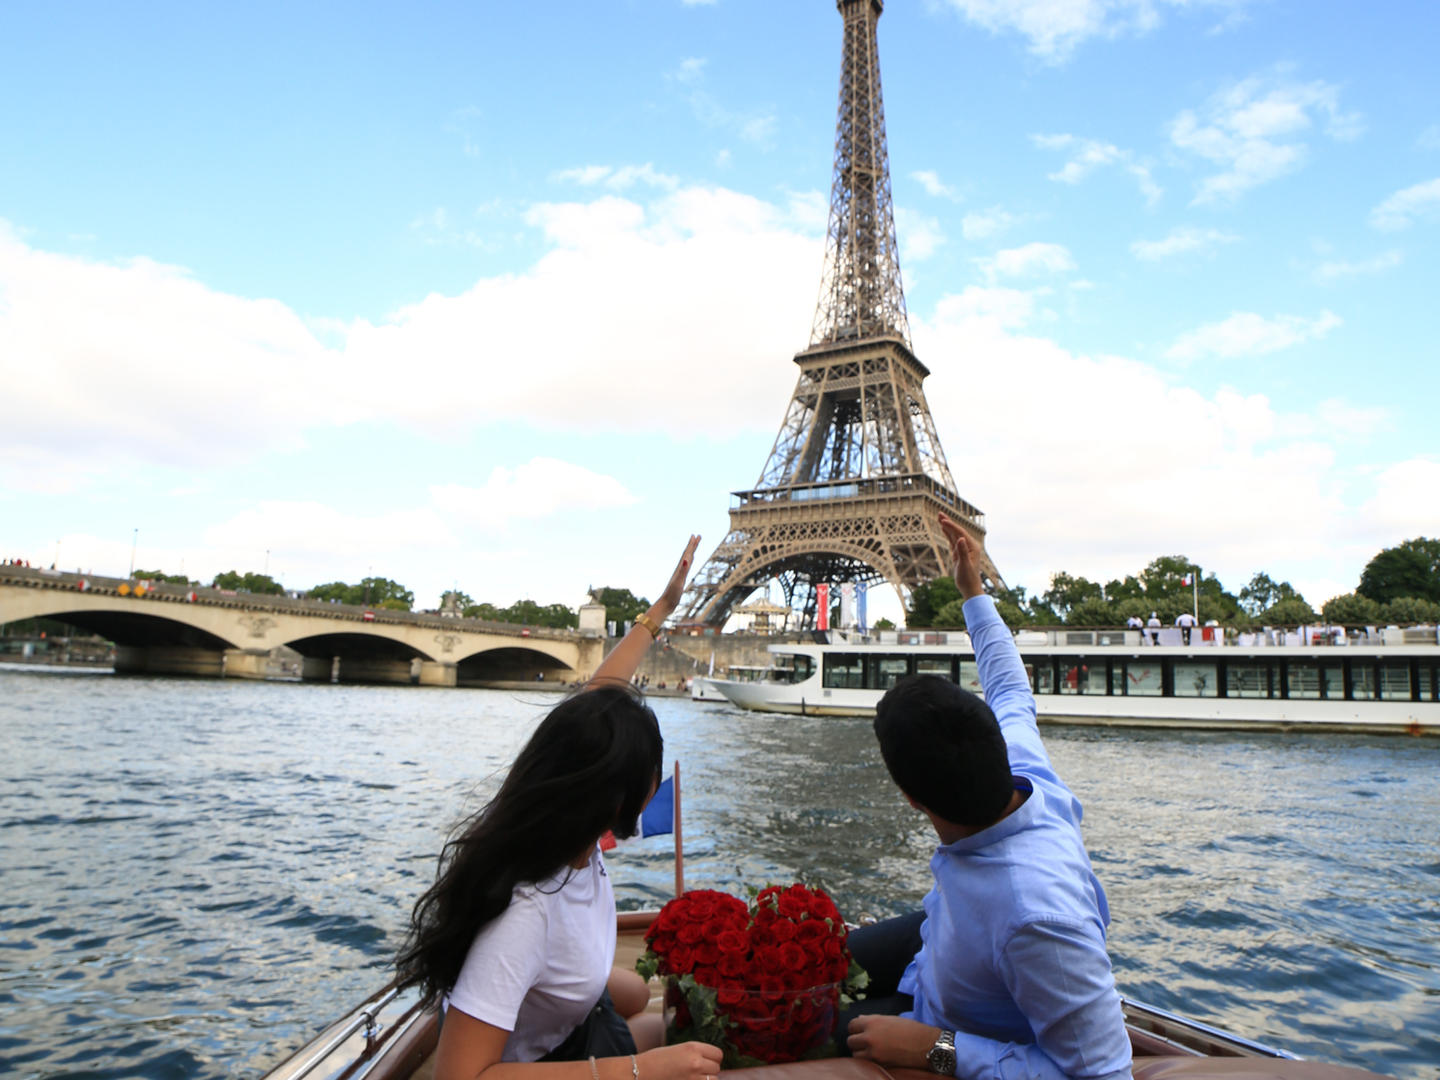 Proposal and romantic private boat ride